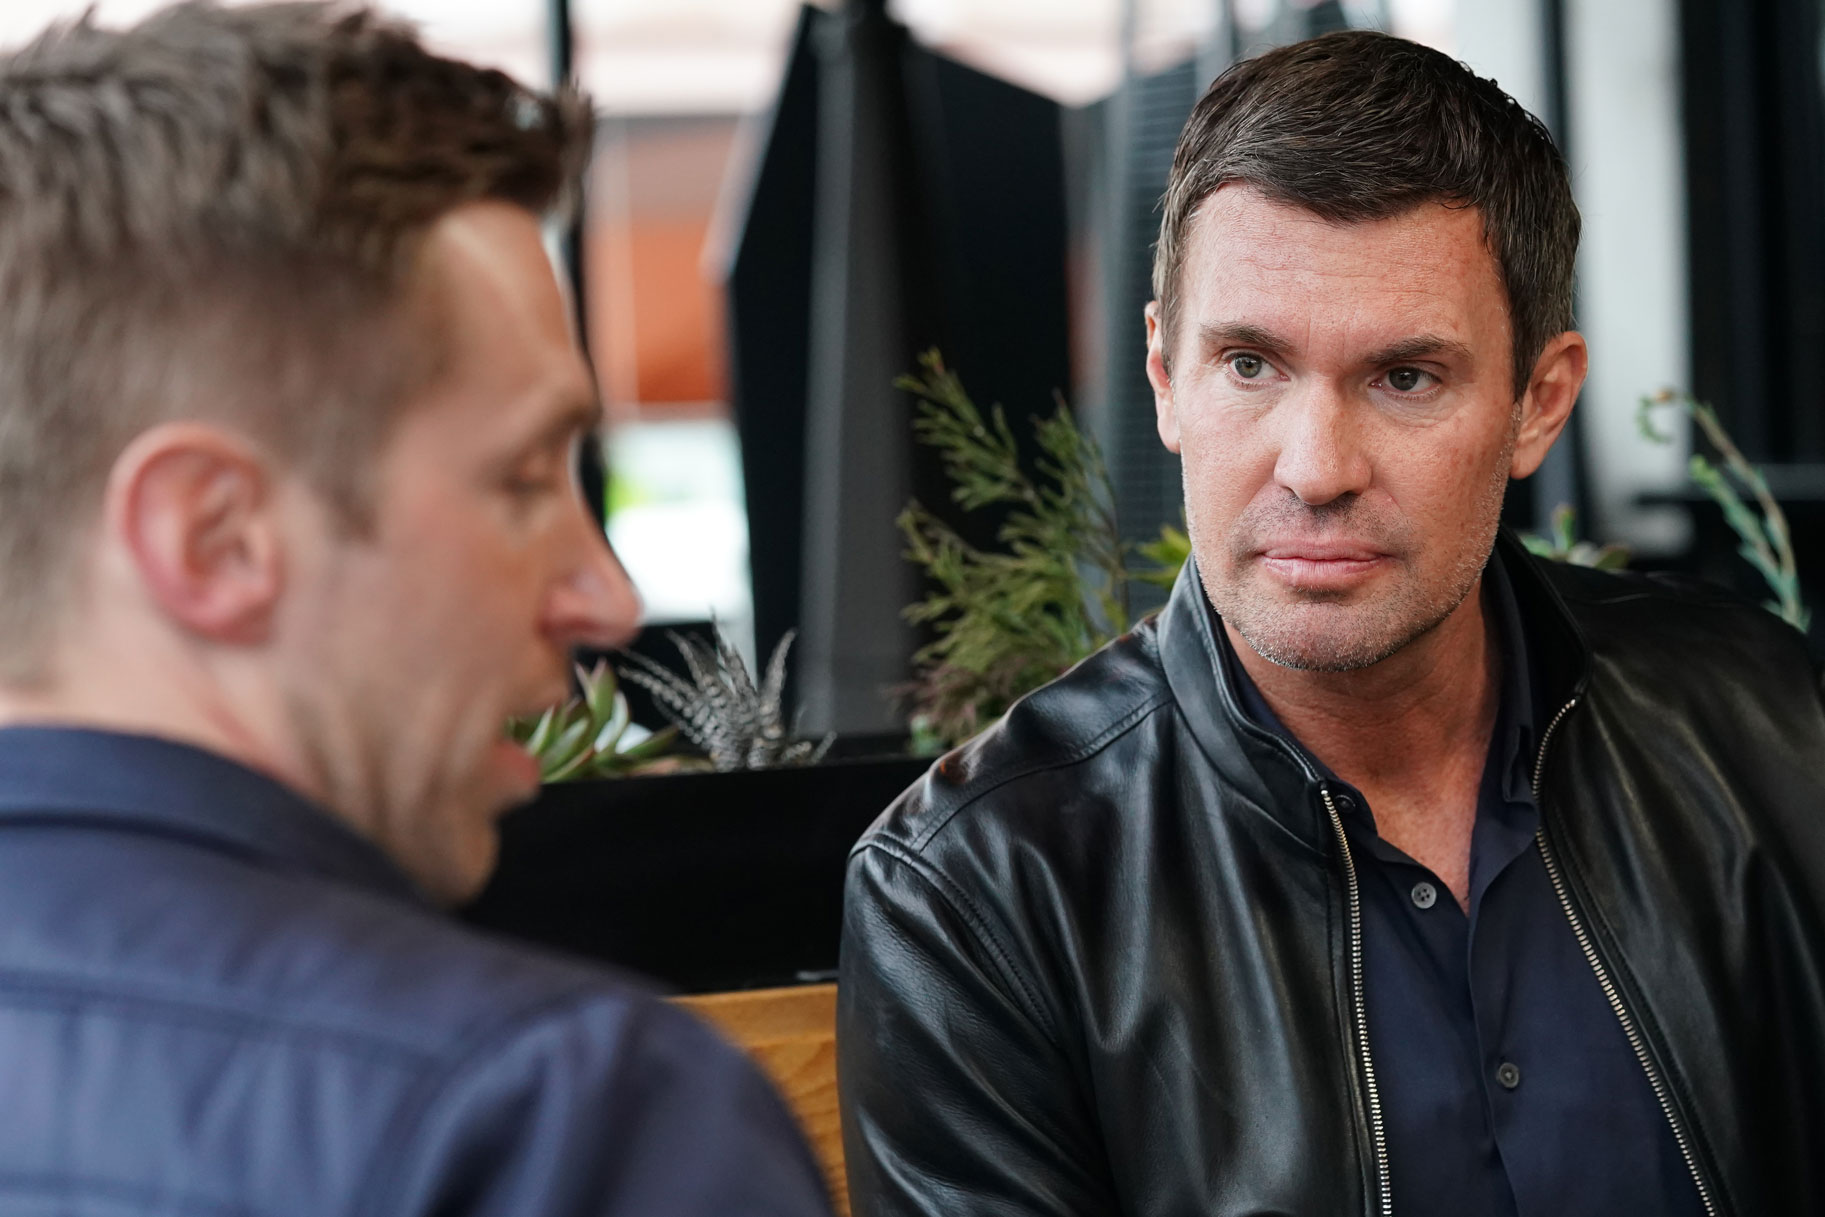 Jeff Lewis, Gage Edward